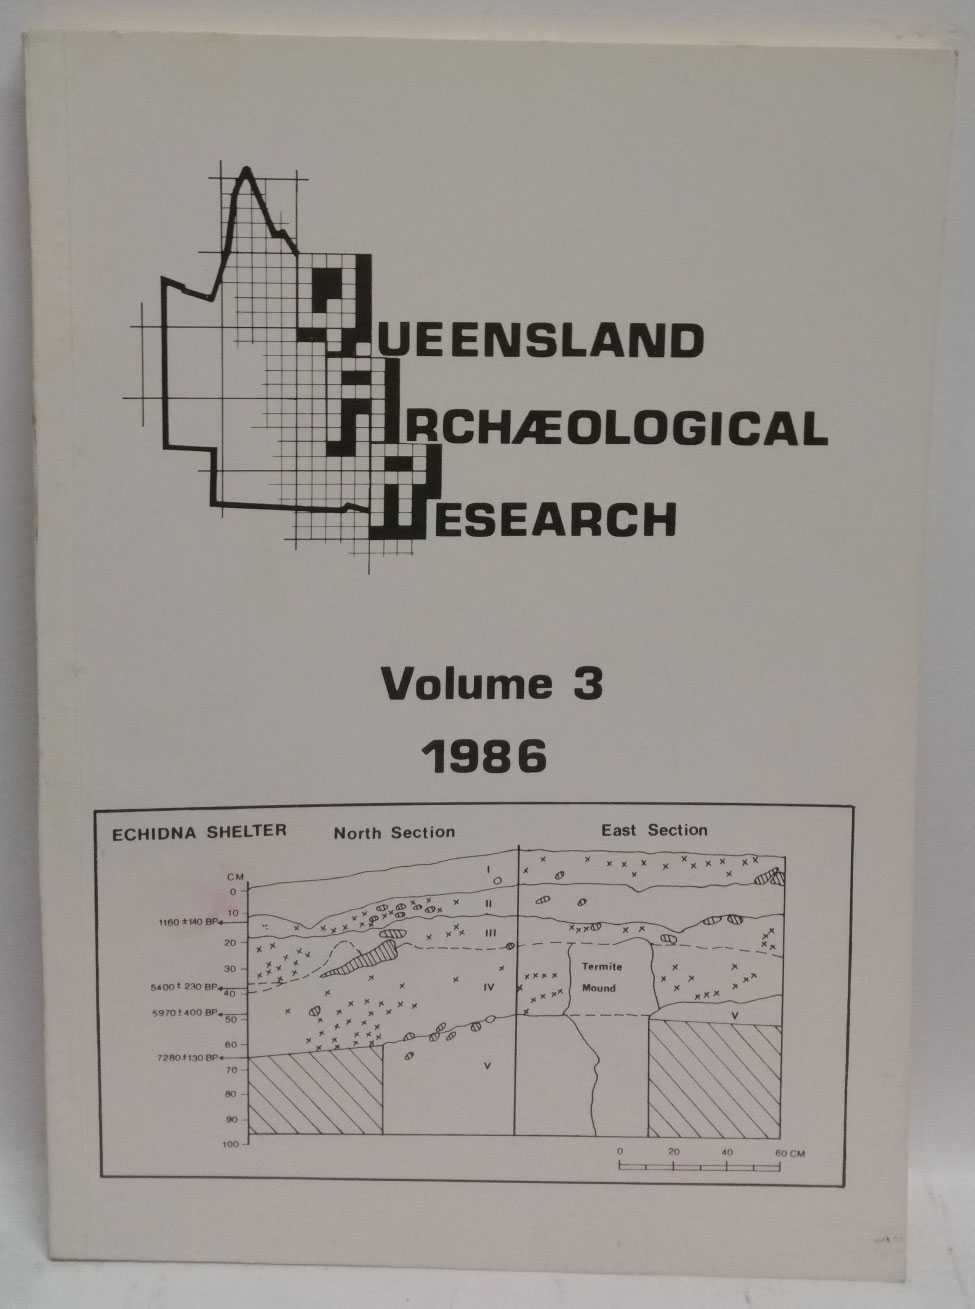 Queensland Archaeological Research Volume 3, 1986, H. J. Hall